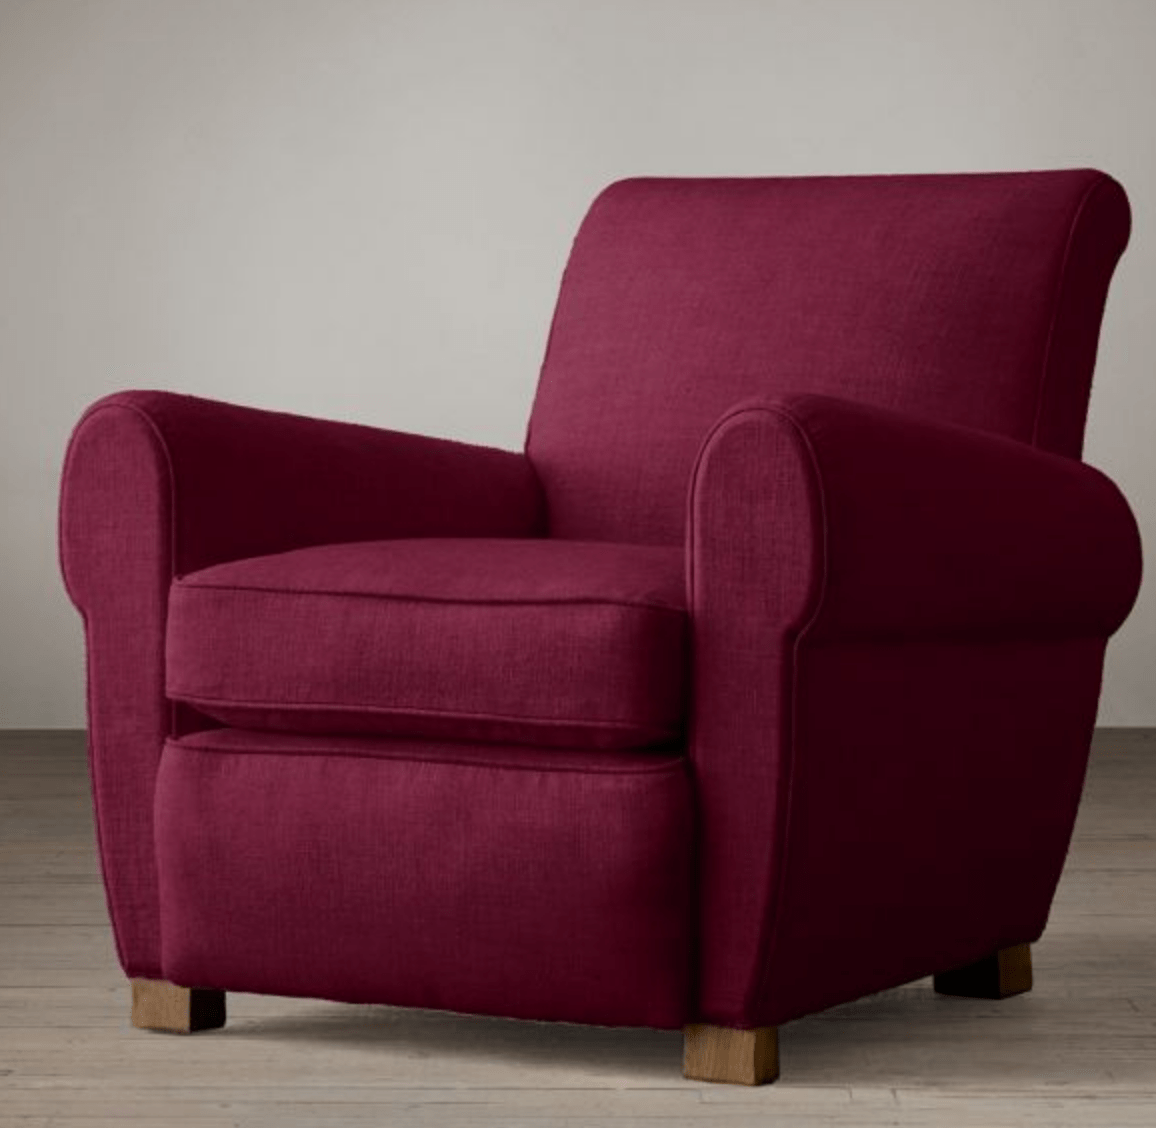 Double Wide Recliner Chair 20 Small Recliners Perfect For Your Living Room Living Room